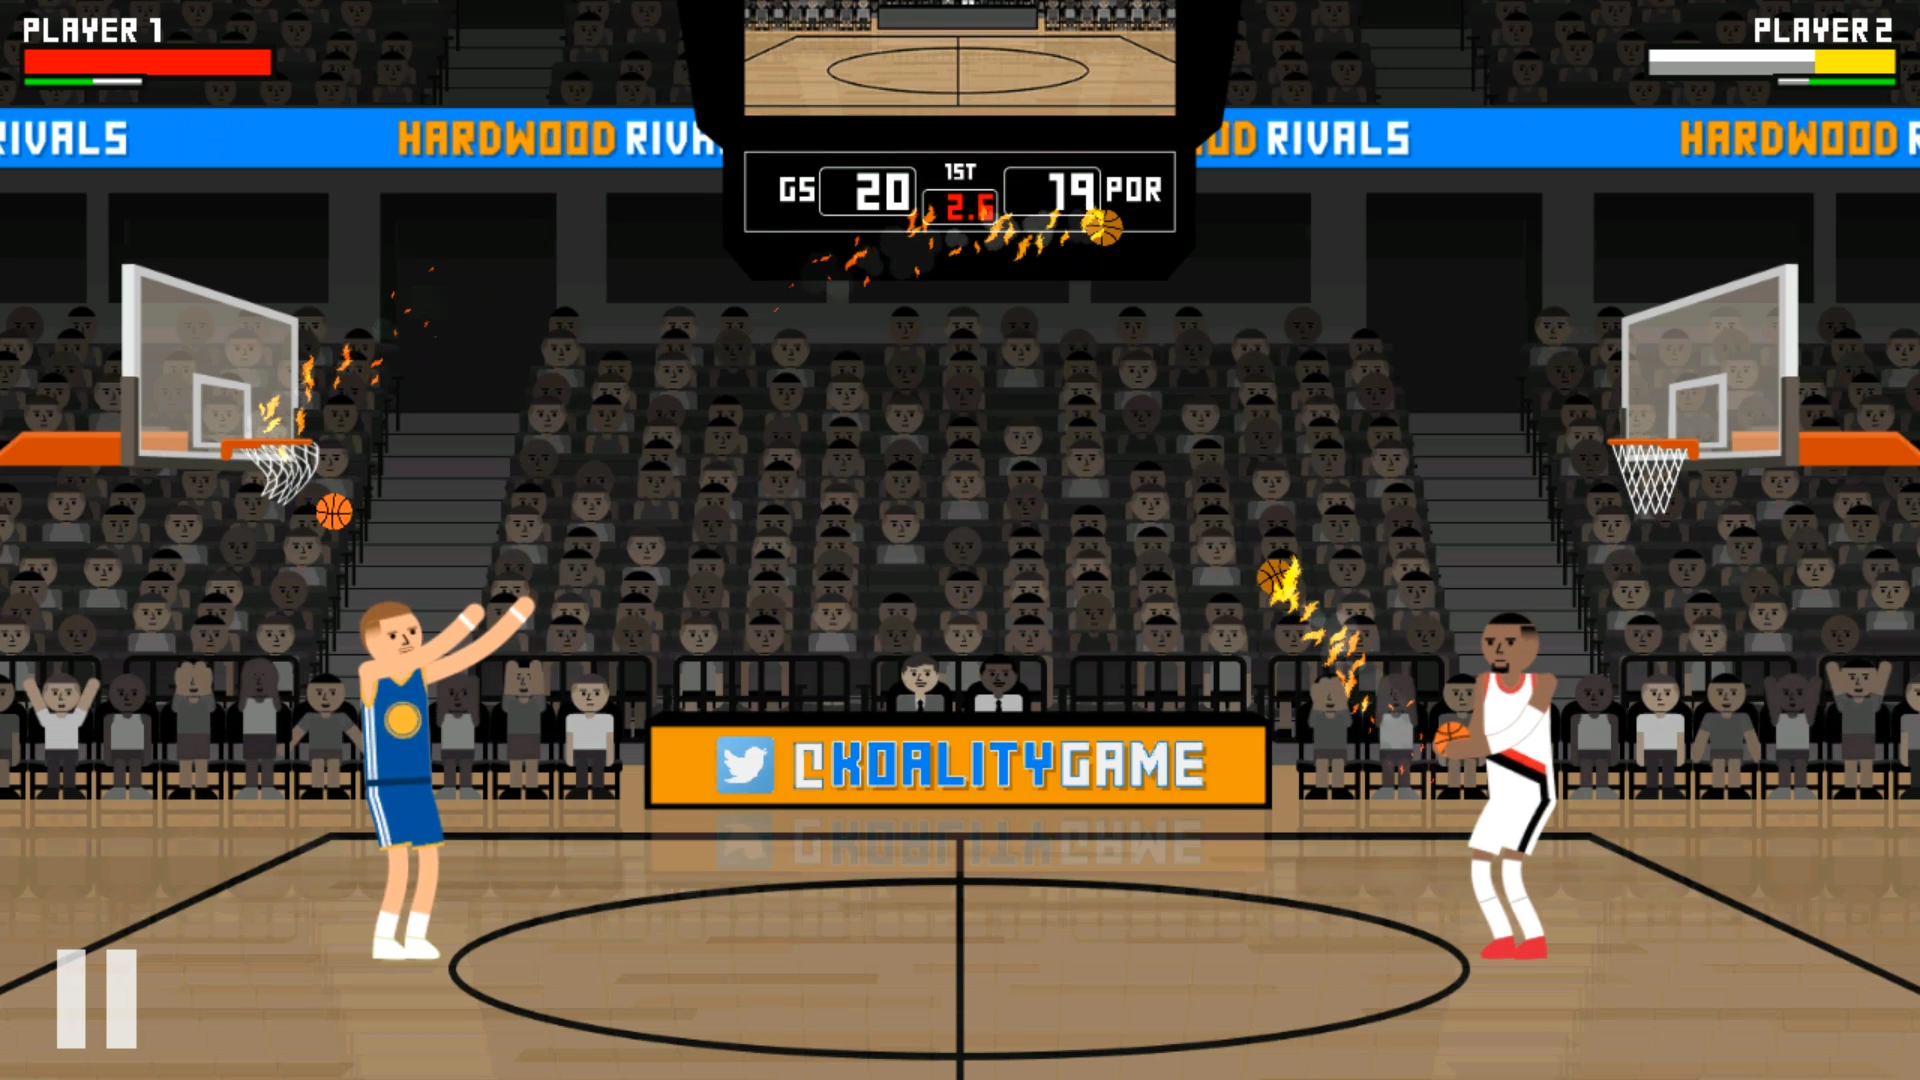 hardwood_rivals_screen_04